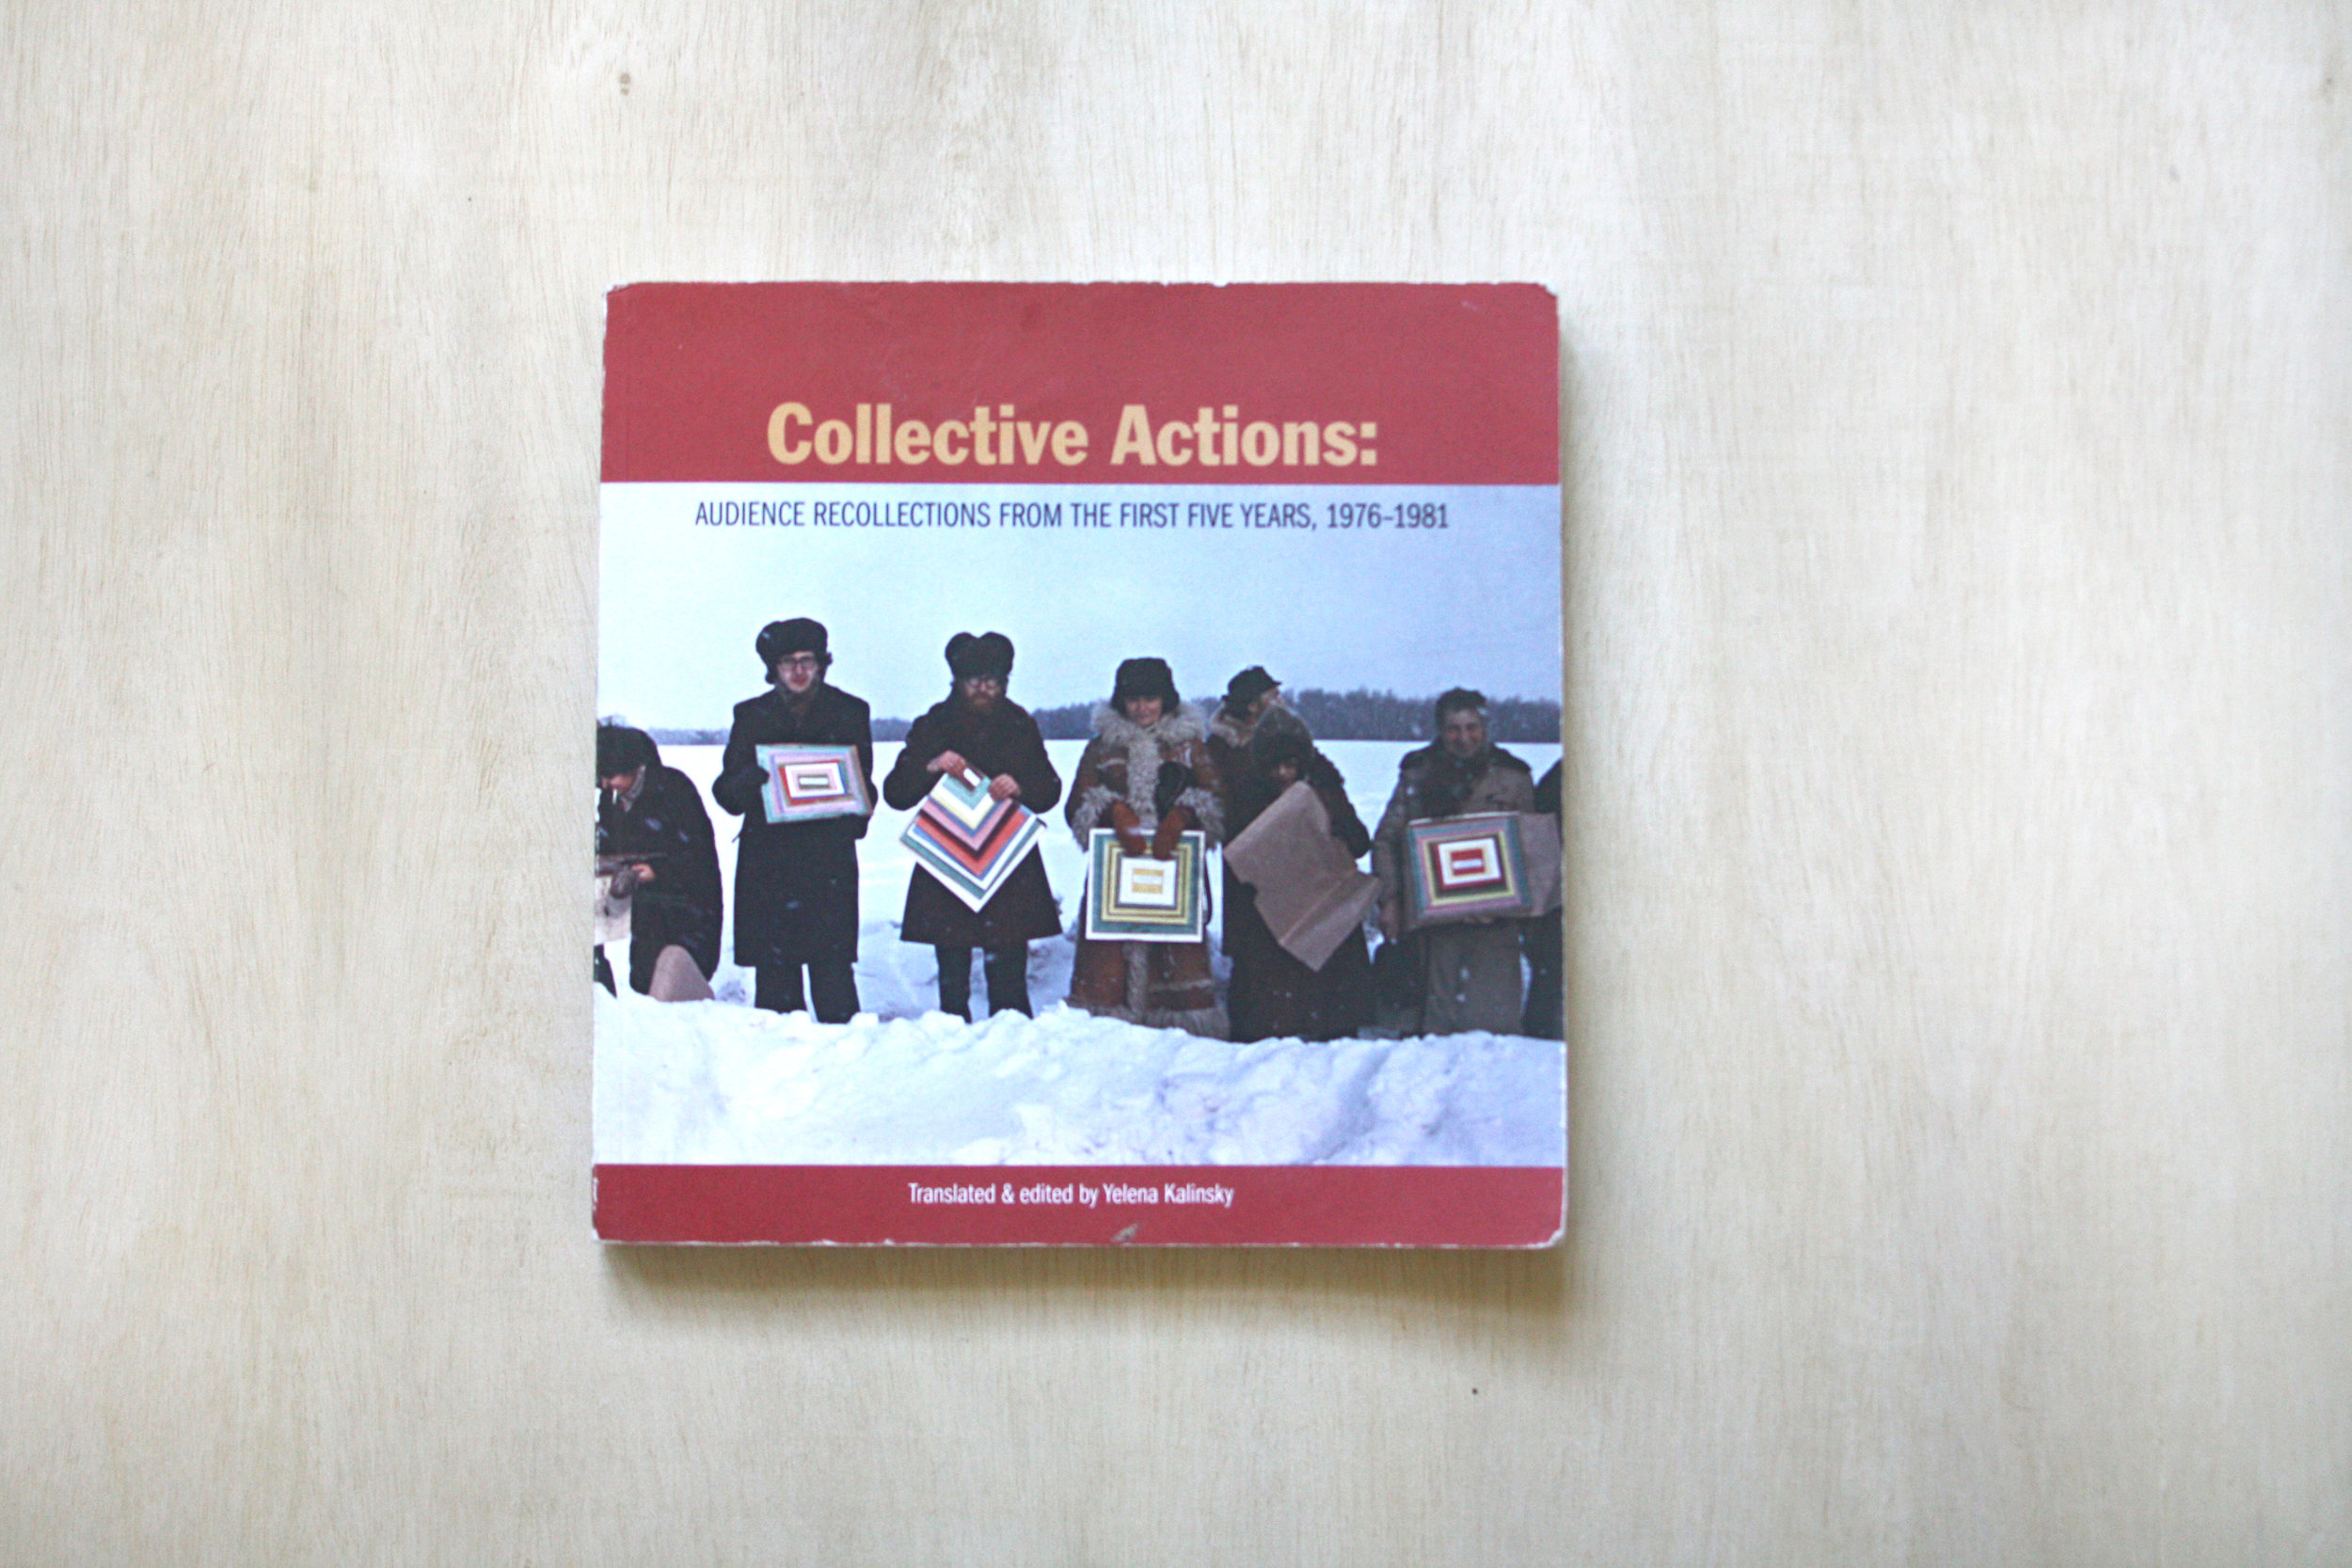 Collective Actions: Audience Recollections from the First Five Years, 1976-1981  translated from the Russian by Yelena Kalinsky.